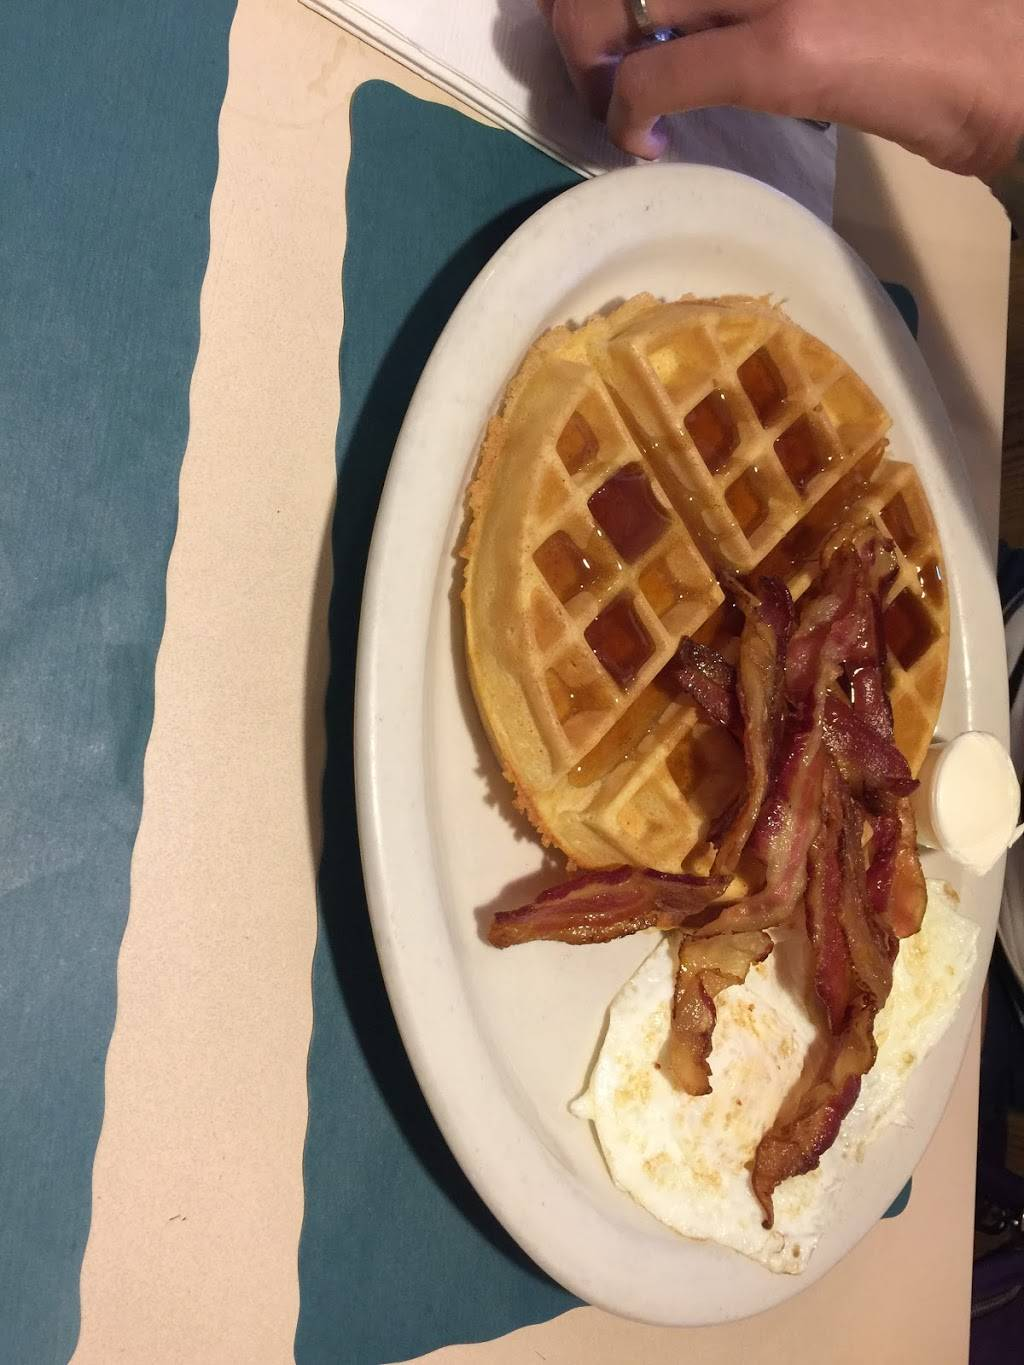 Lighthouse Family Restaurant and Diner | restaurant | 669 Broadway, Bayonne, NJ 07002, USA | 2014378650 OR +1 201-437-8650